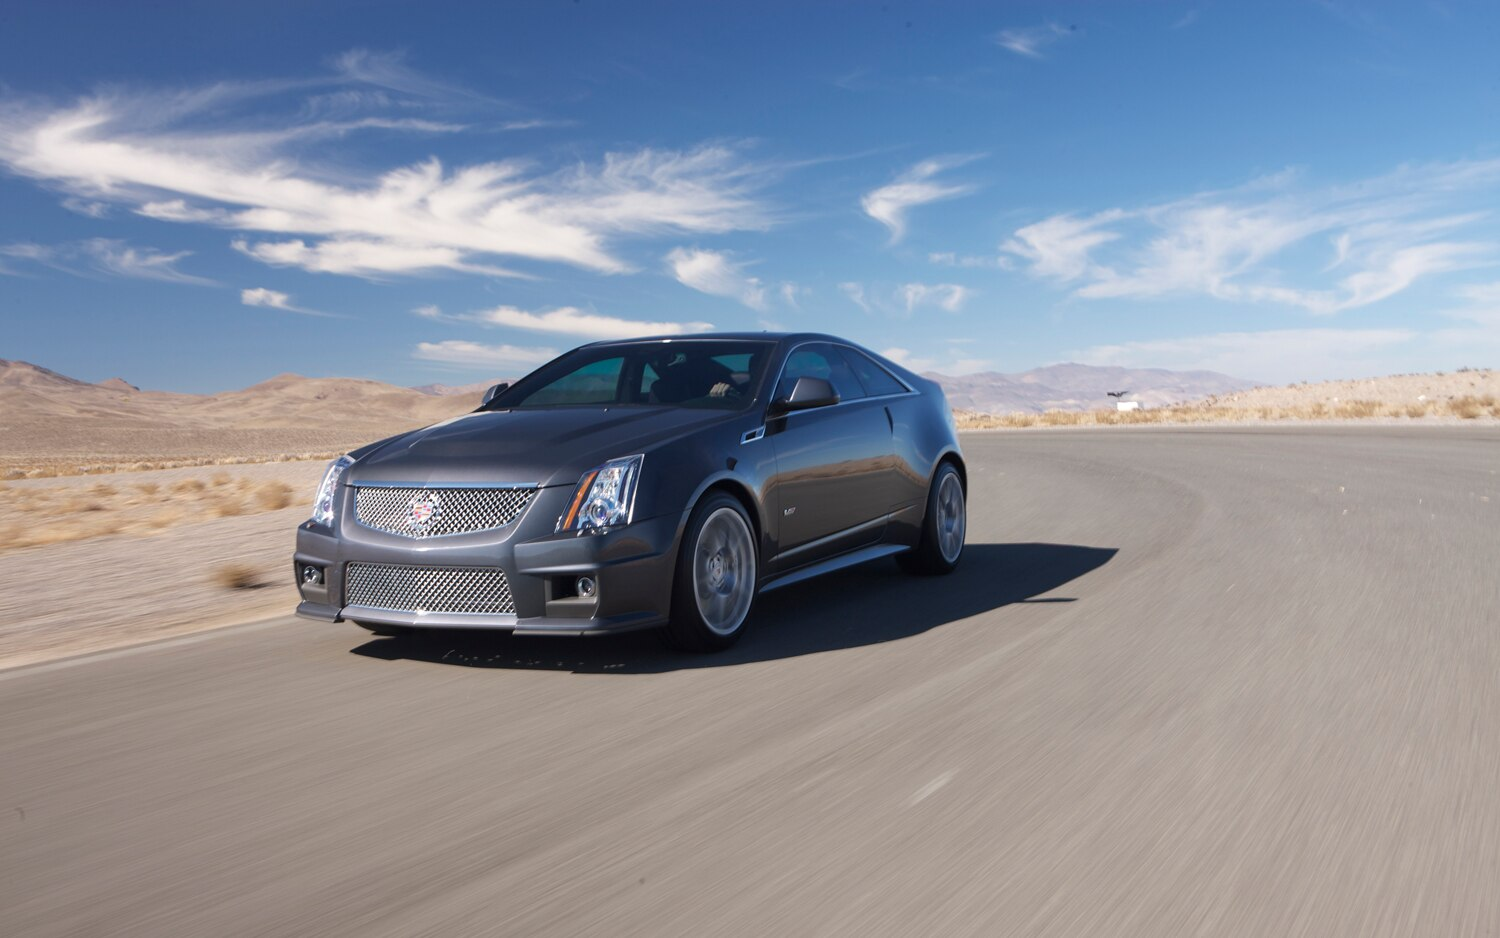 A Week With The Cadillac CTS-V Coupe